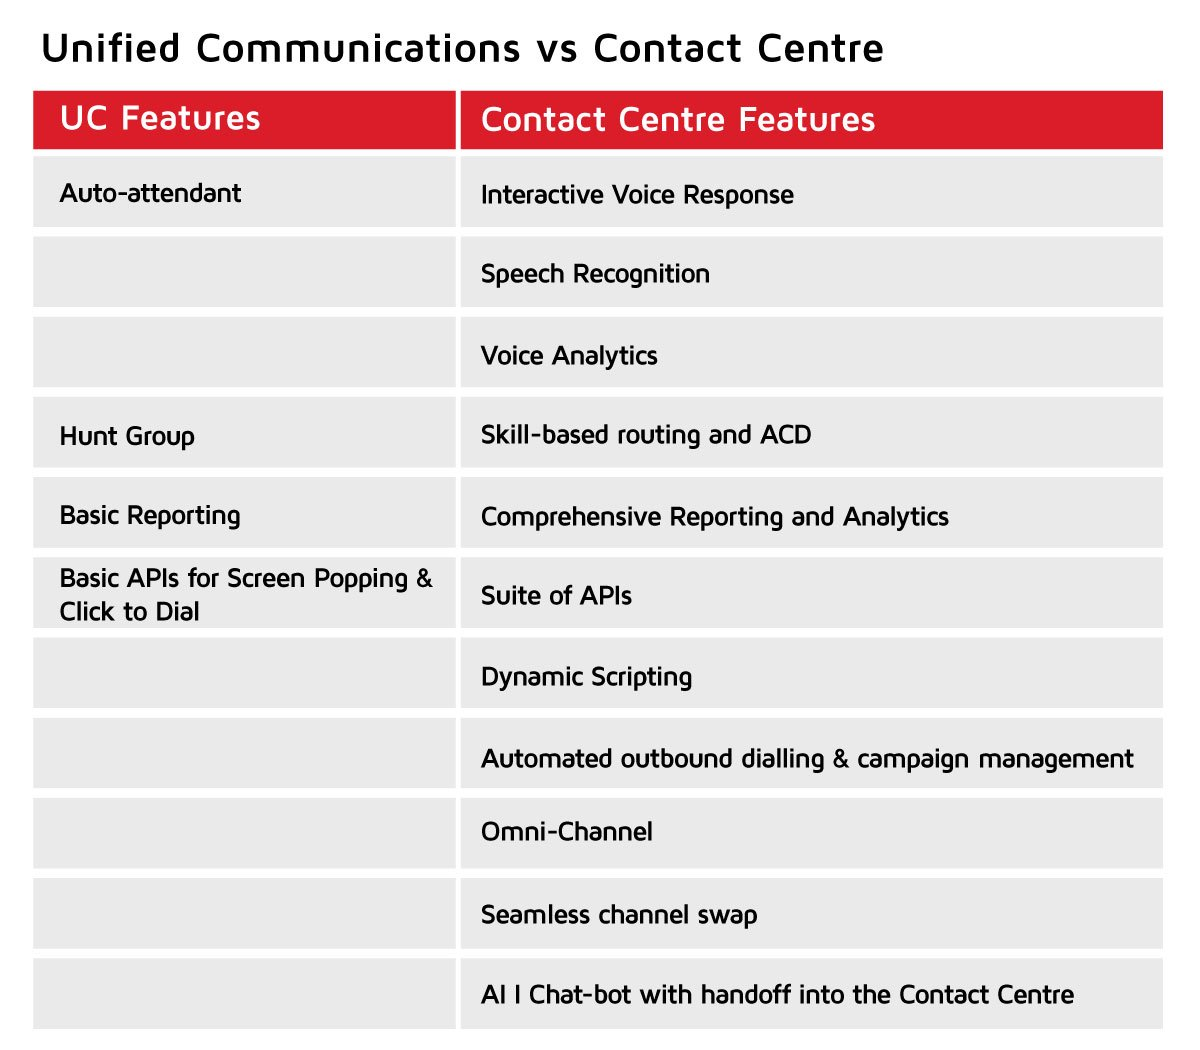 UC v Contact Centre Features